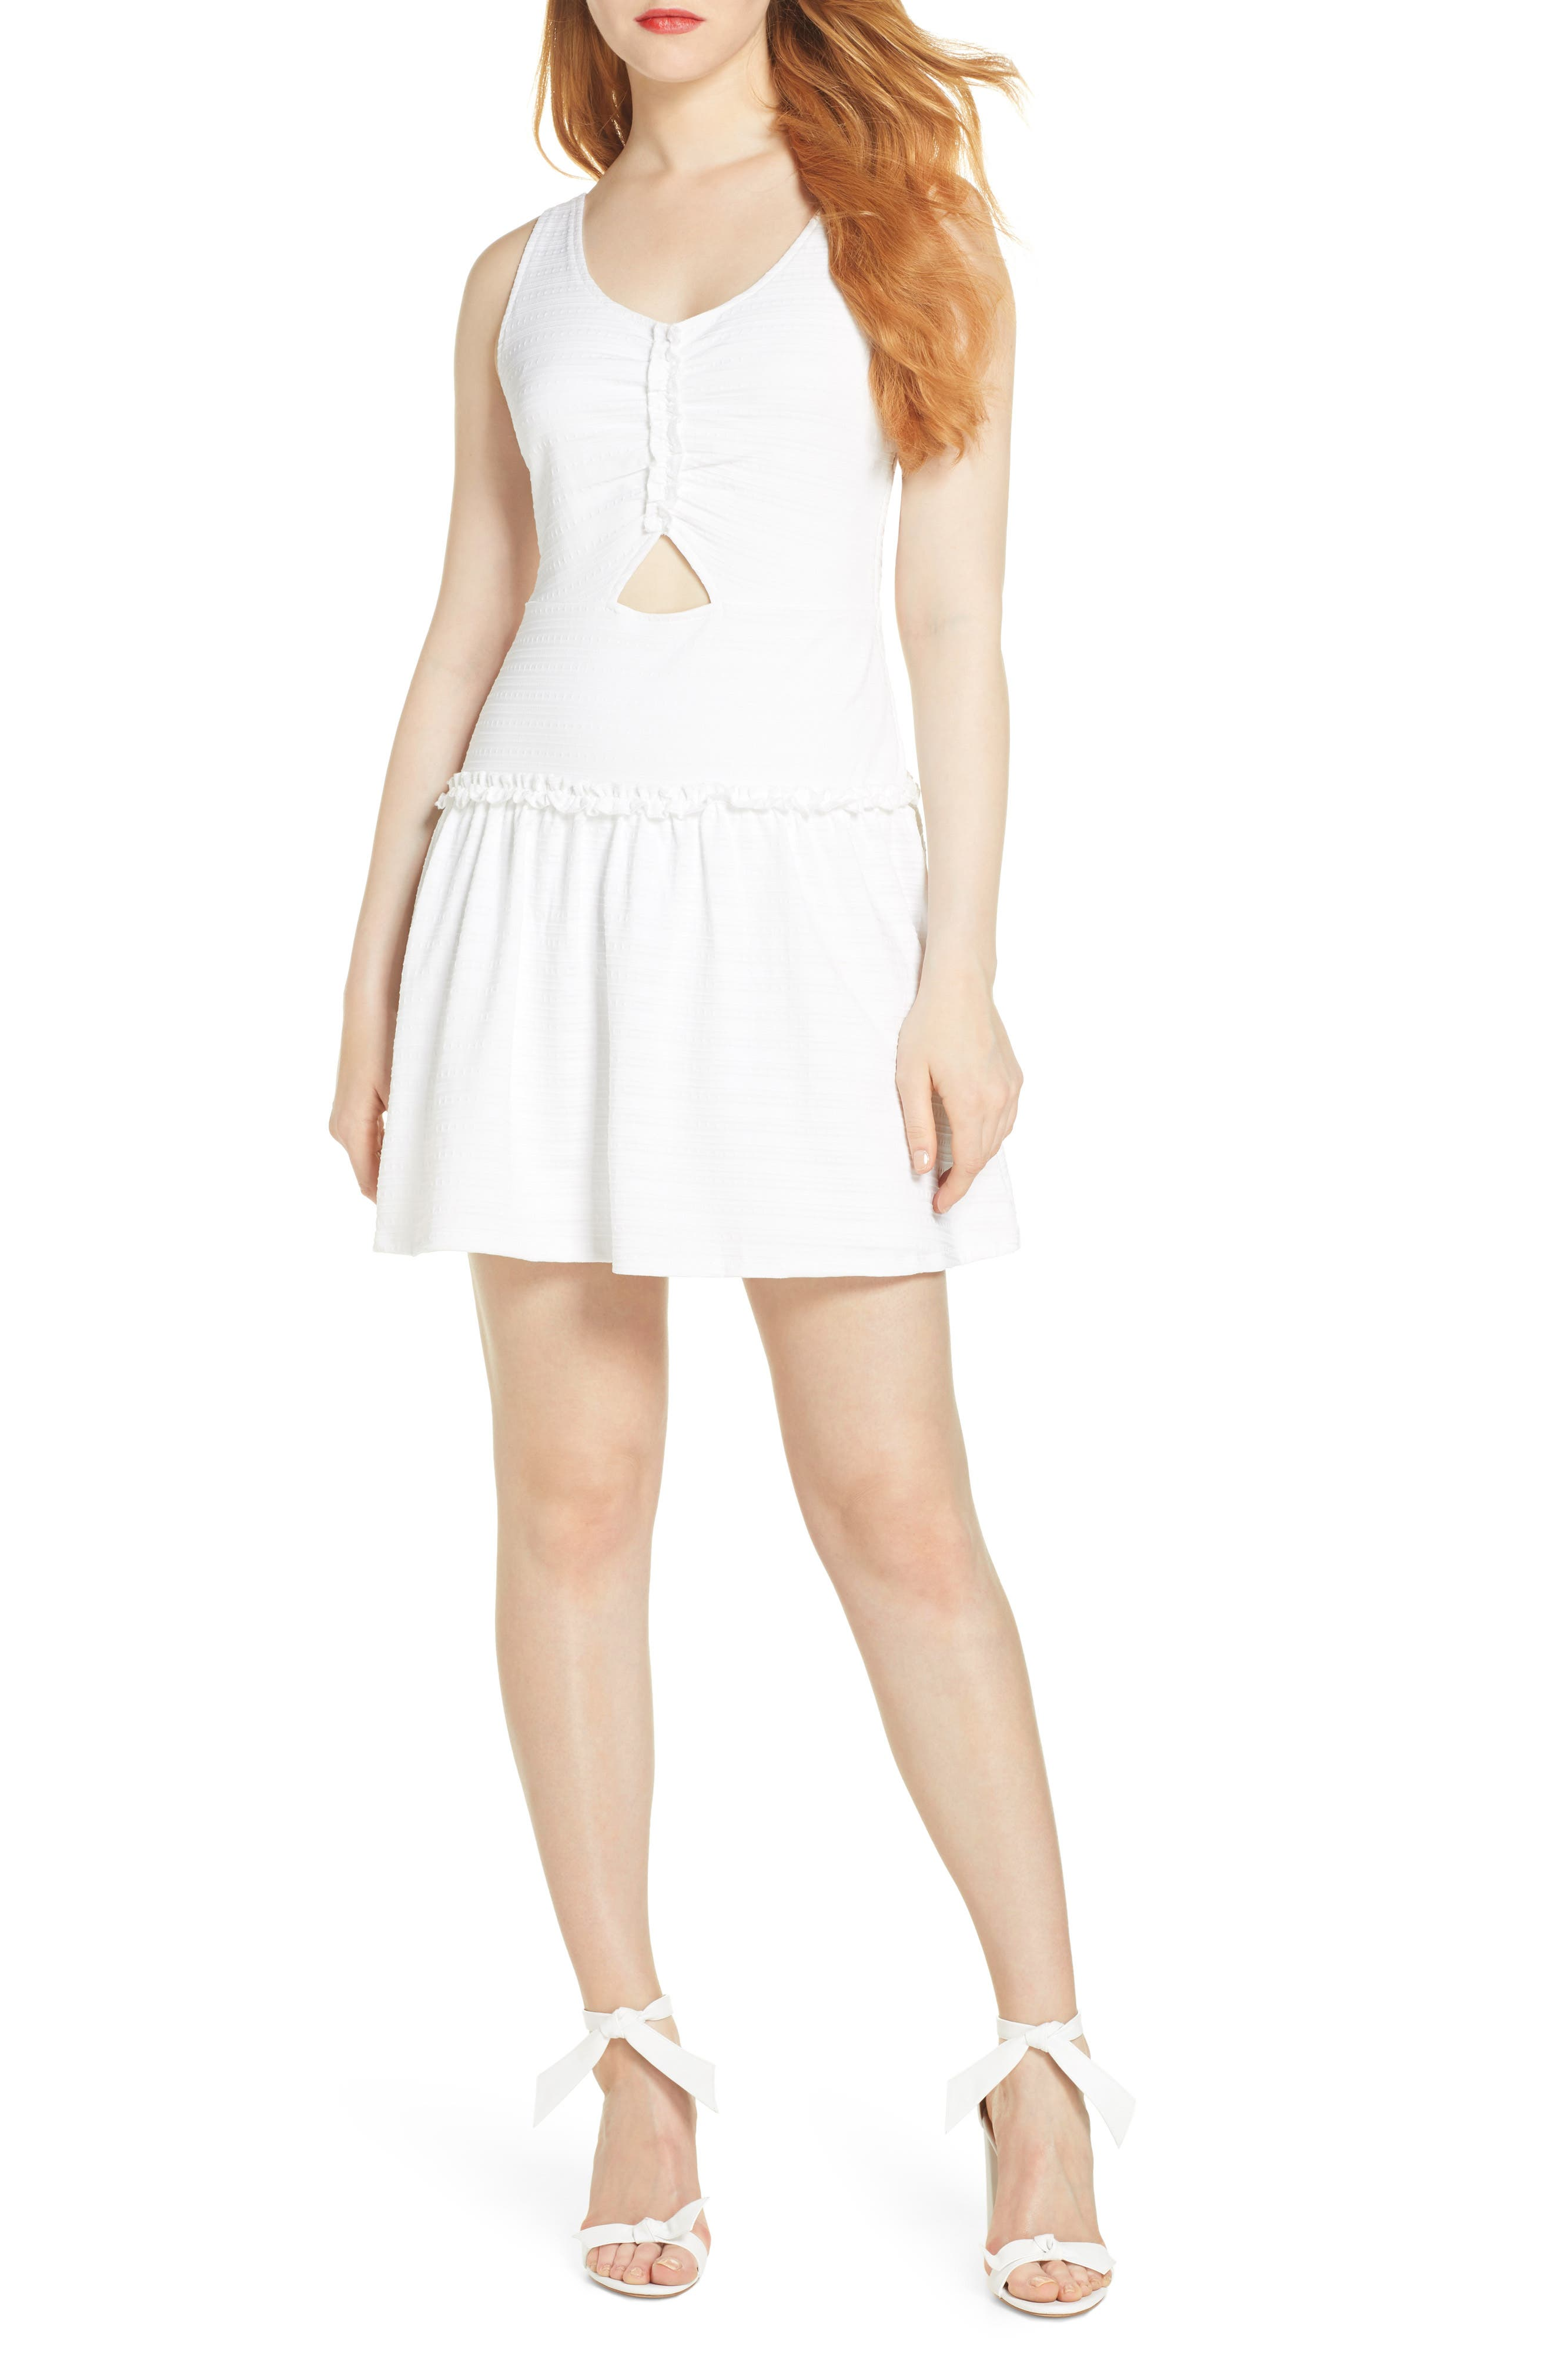 Ali & Jay X Dress Up Buttercup Old Town Strollin Minidress, White